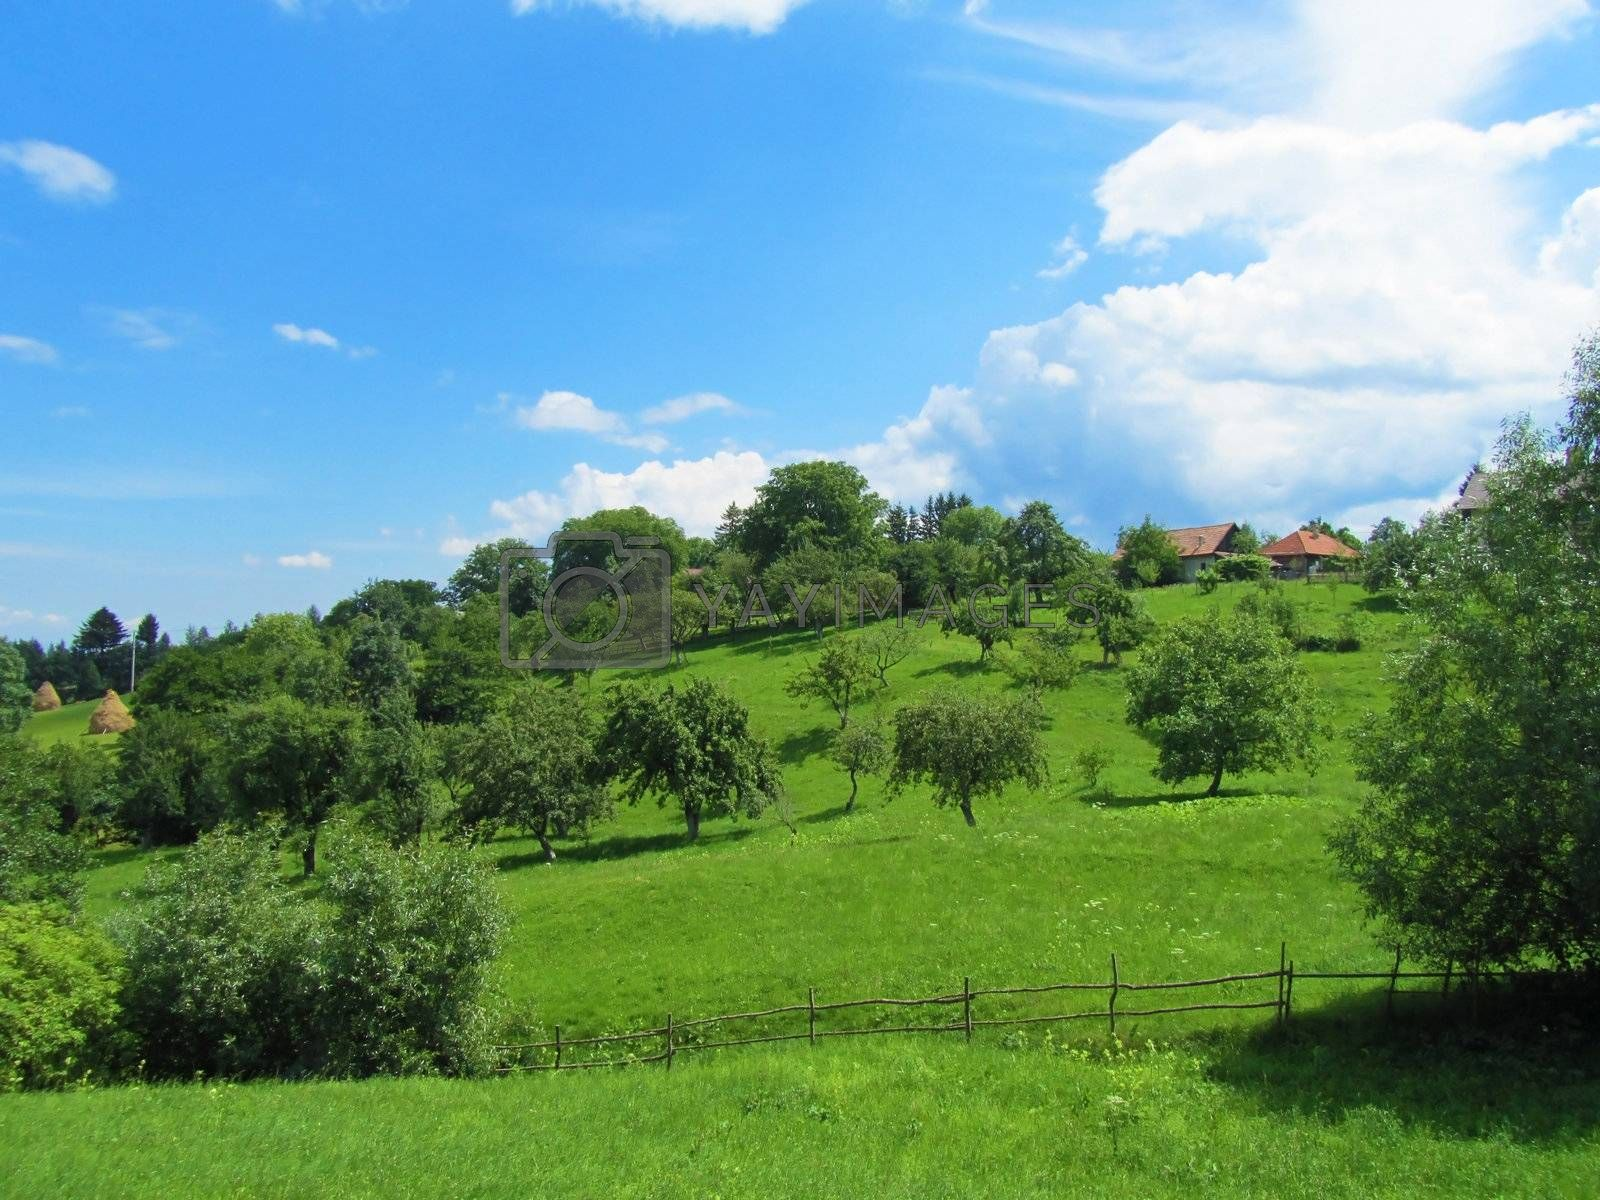 View of green hills with houses and trees